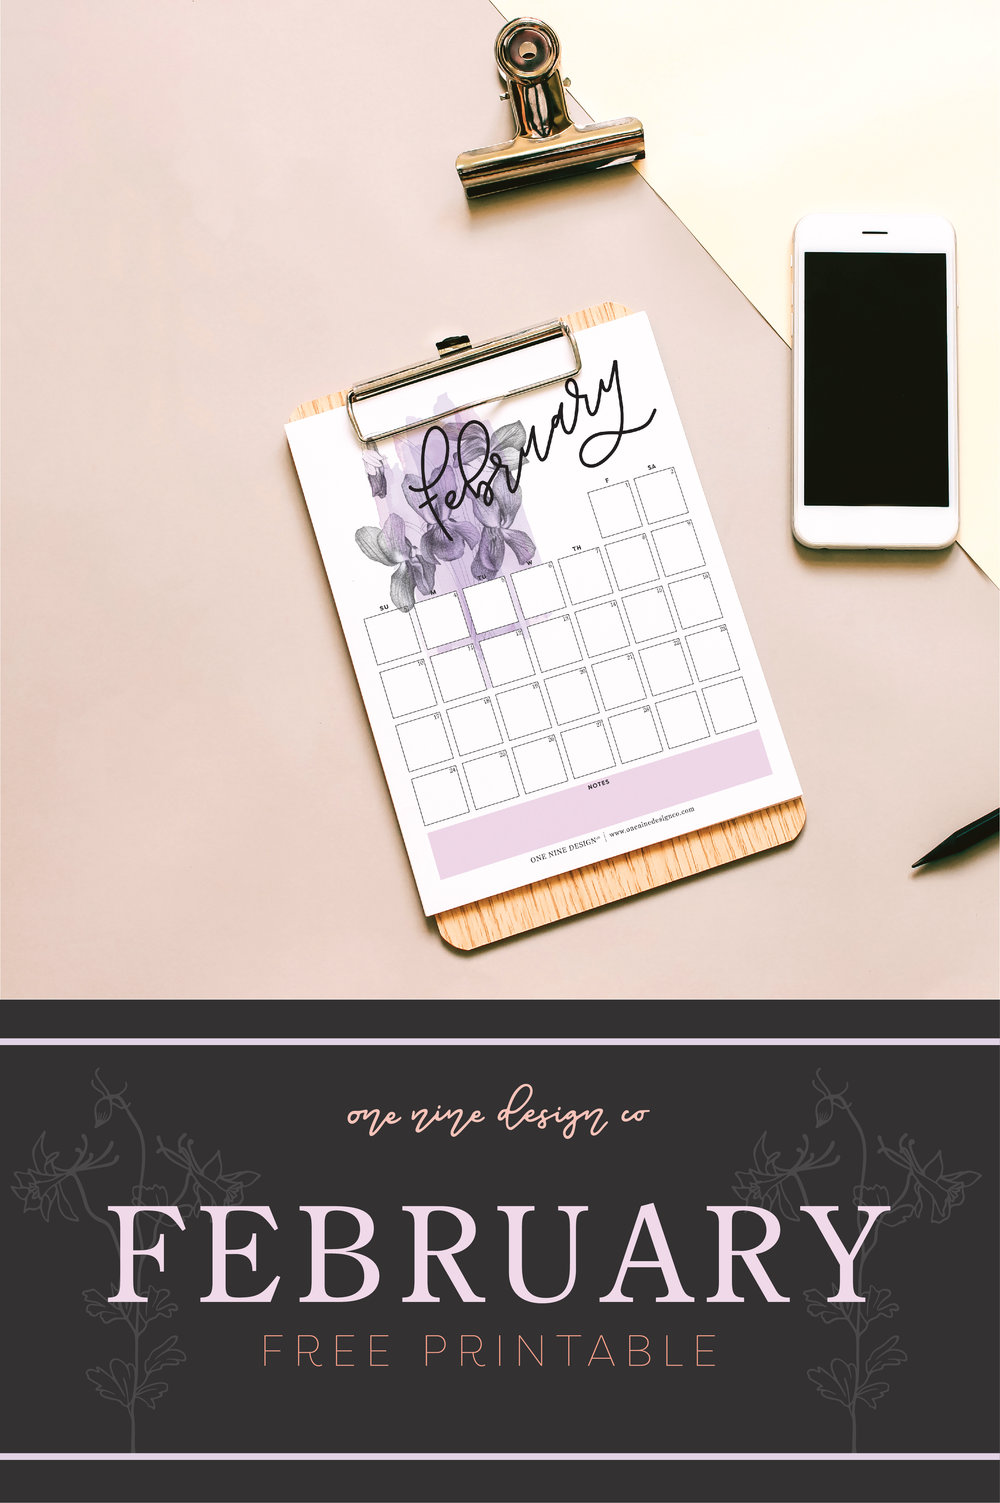 February 2019 Calendar | One Nine Design Co